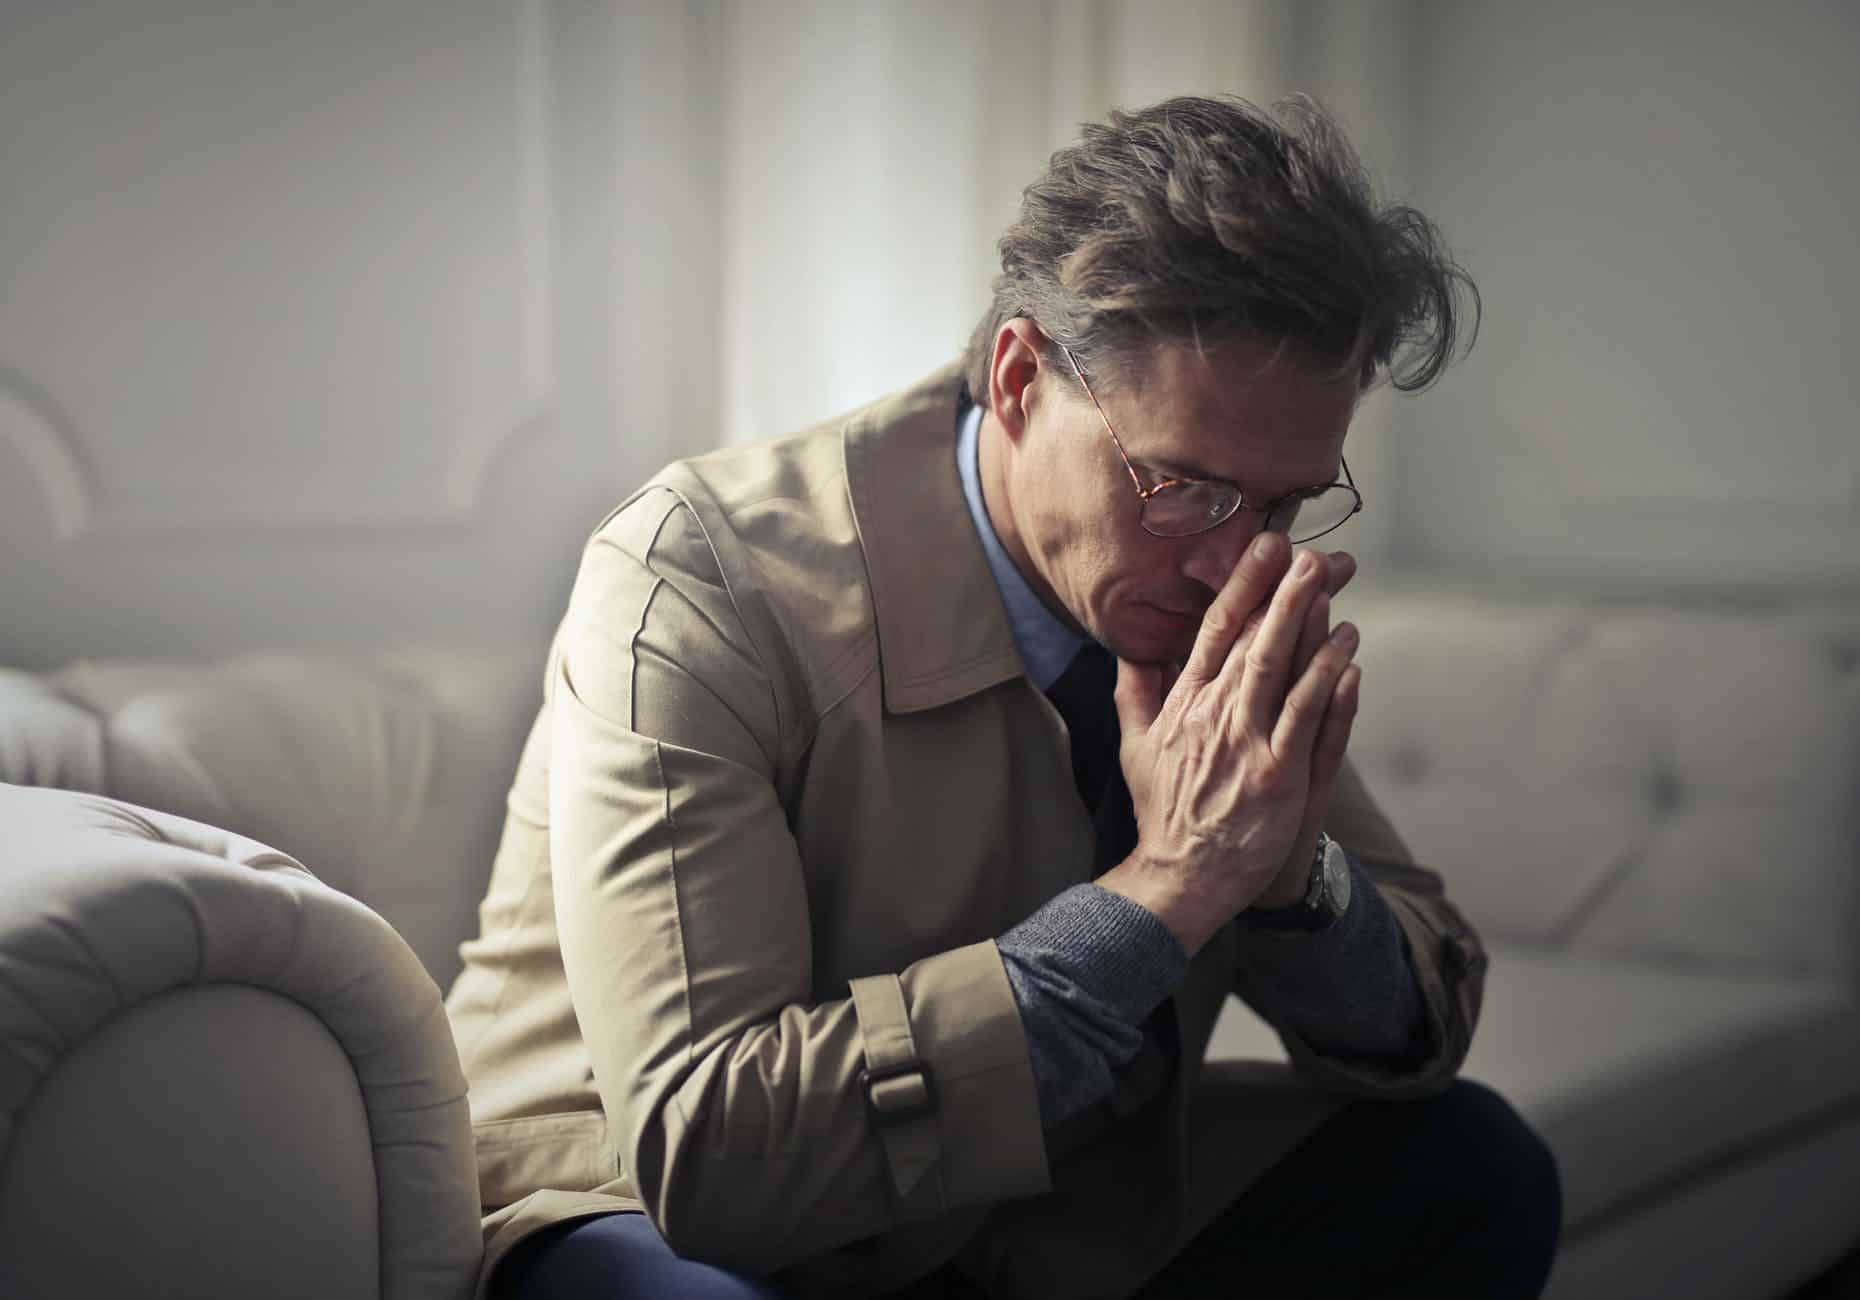 sad mature businessman thinking about problems in living room The Key to Effective Leadership